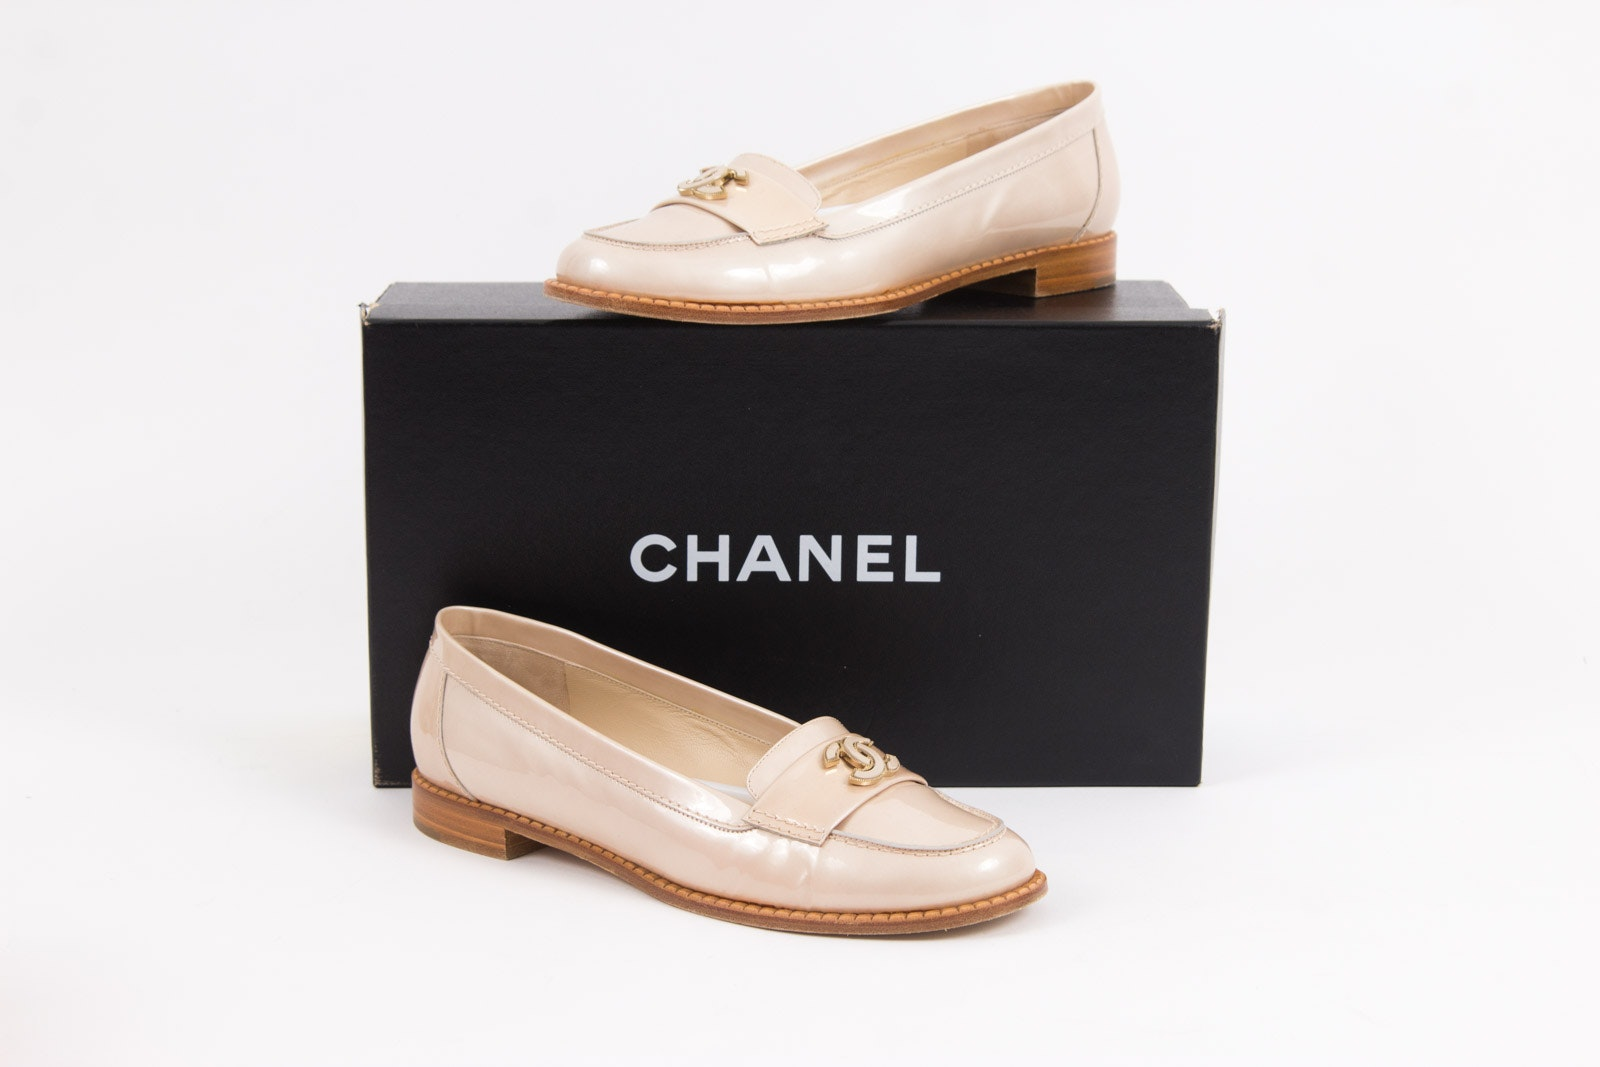 Chanel Beige Patent Leather CC Loafers